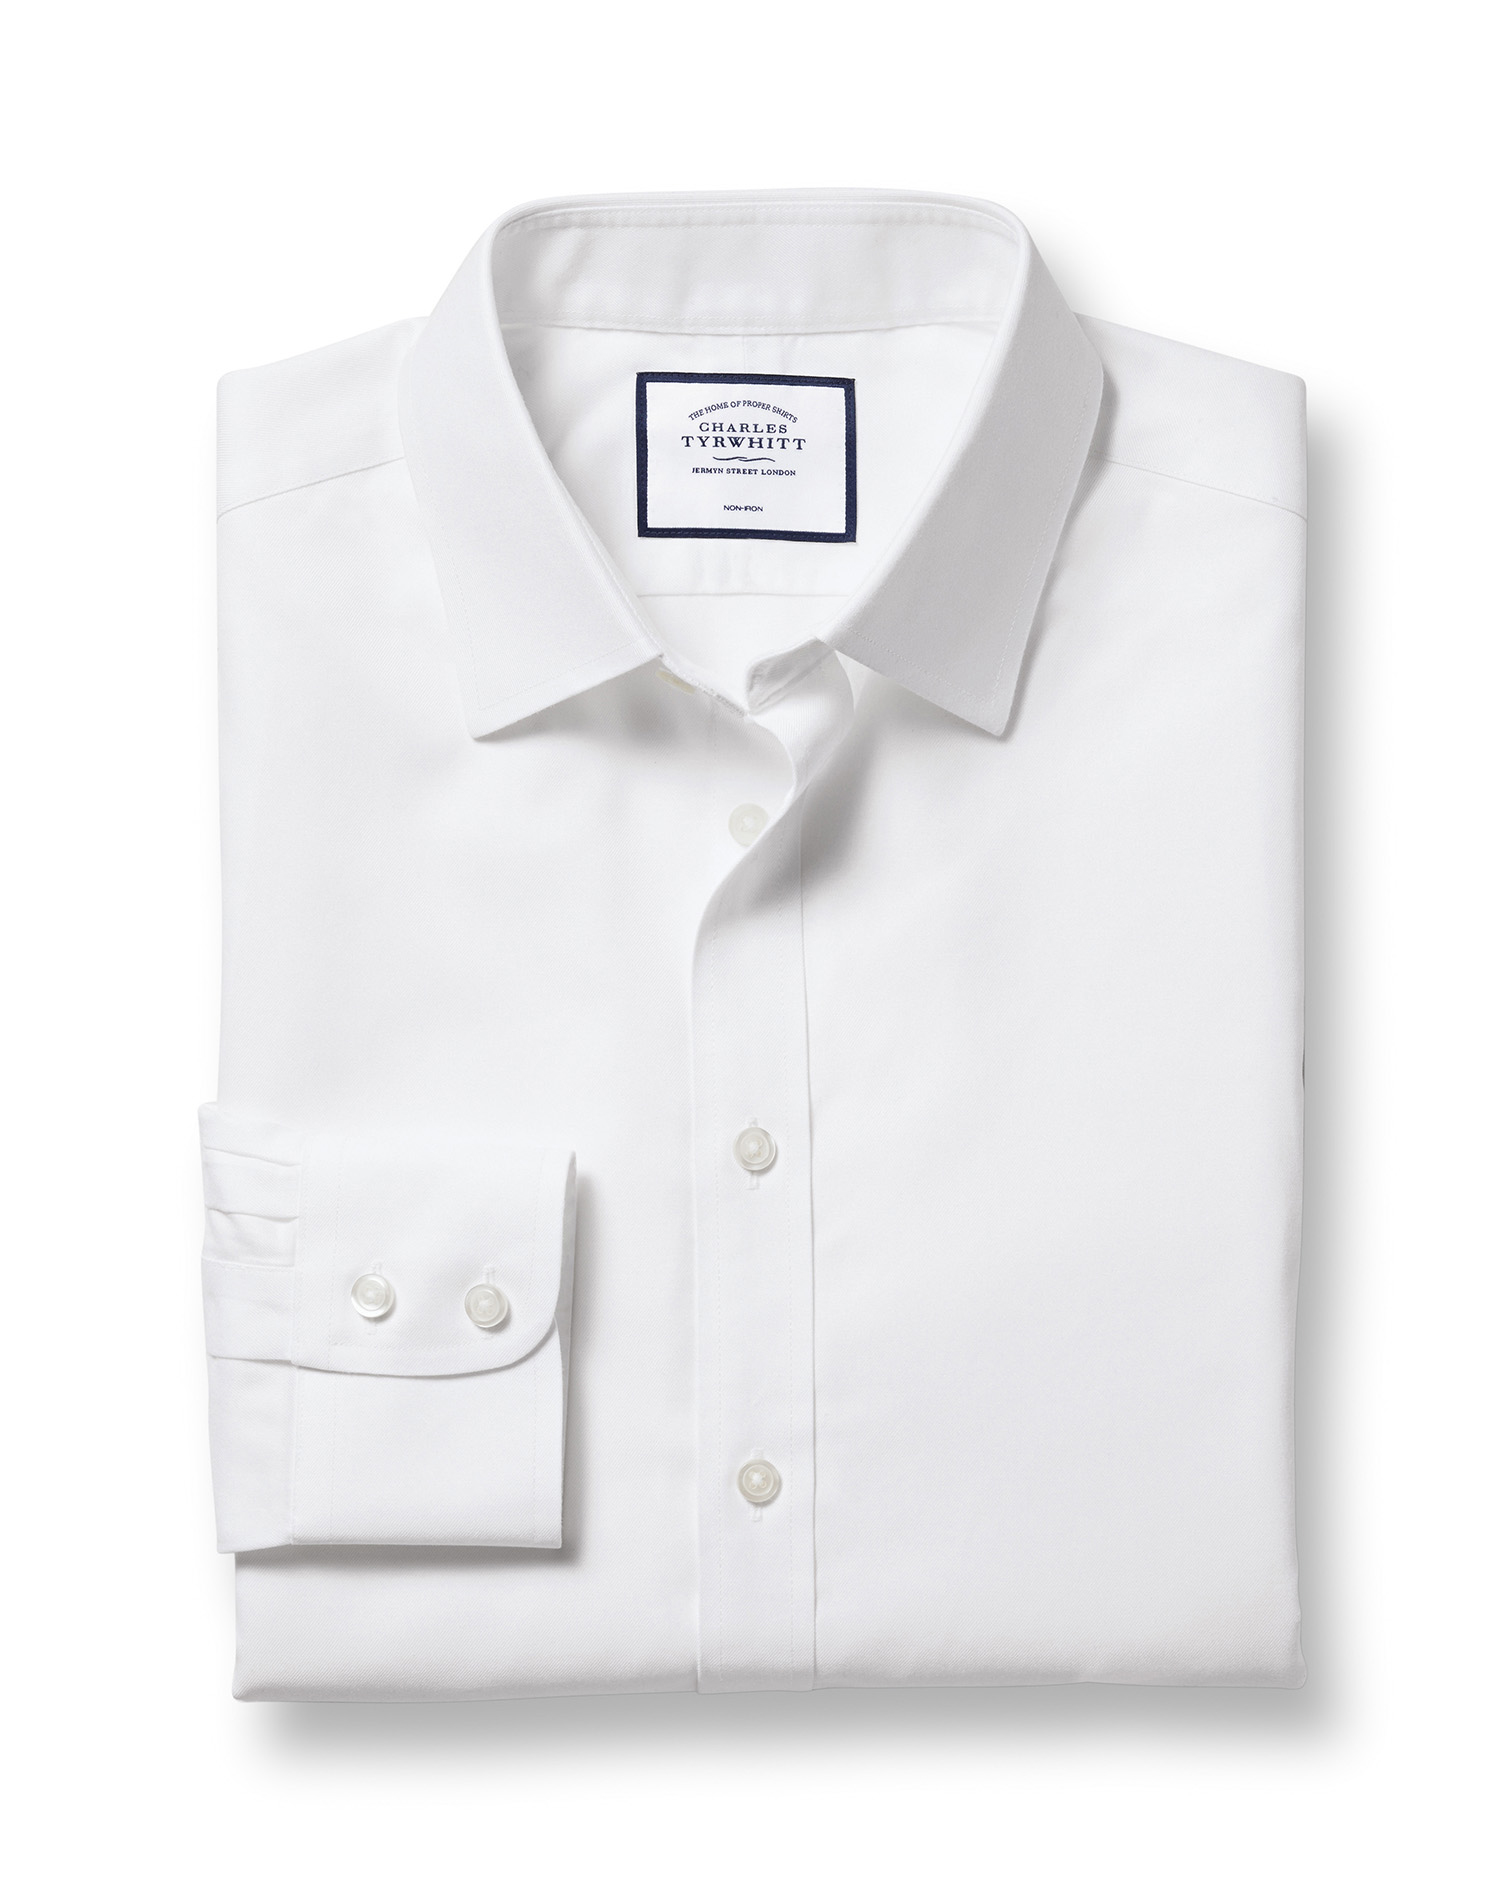 Extra Slim Fit White Non-Iron Twill Cotton Formal Shirt Double Cuff Size 15.5/32 by Charles Tyrwhitt